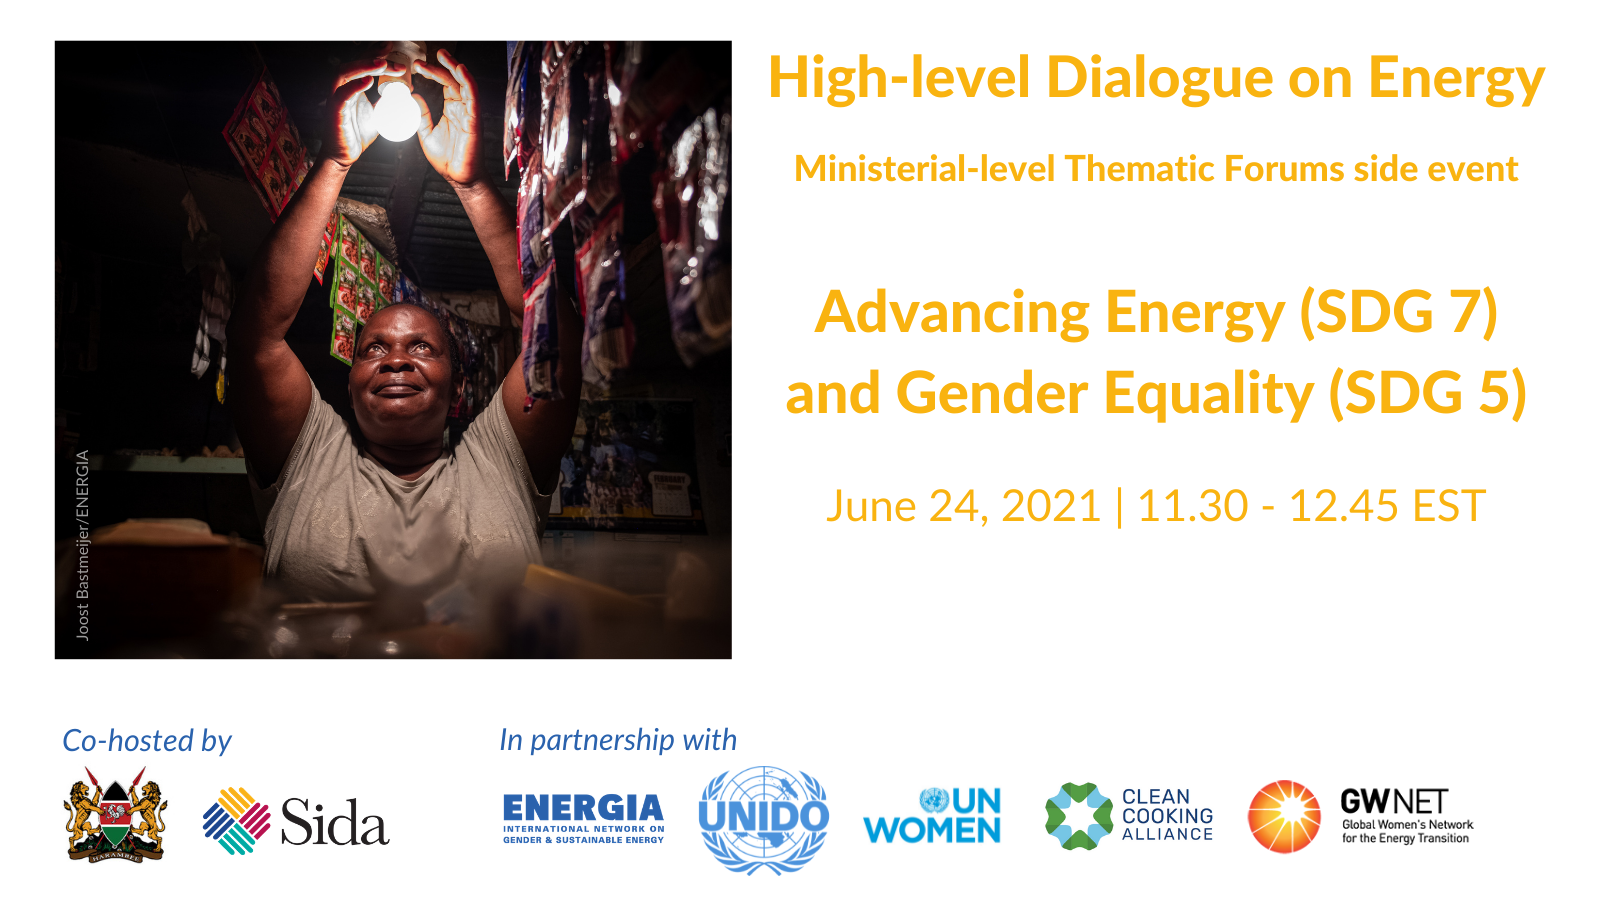 Ministerial-level Thematic Forums side event: Advancing Energy (SDG 7) and Gender Equality (SDG 5)